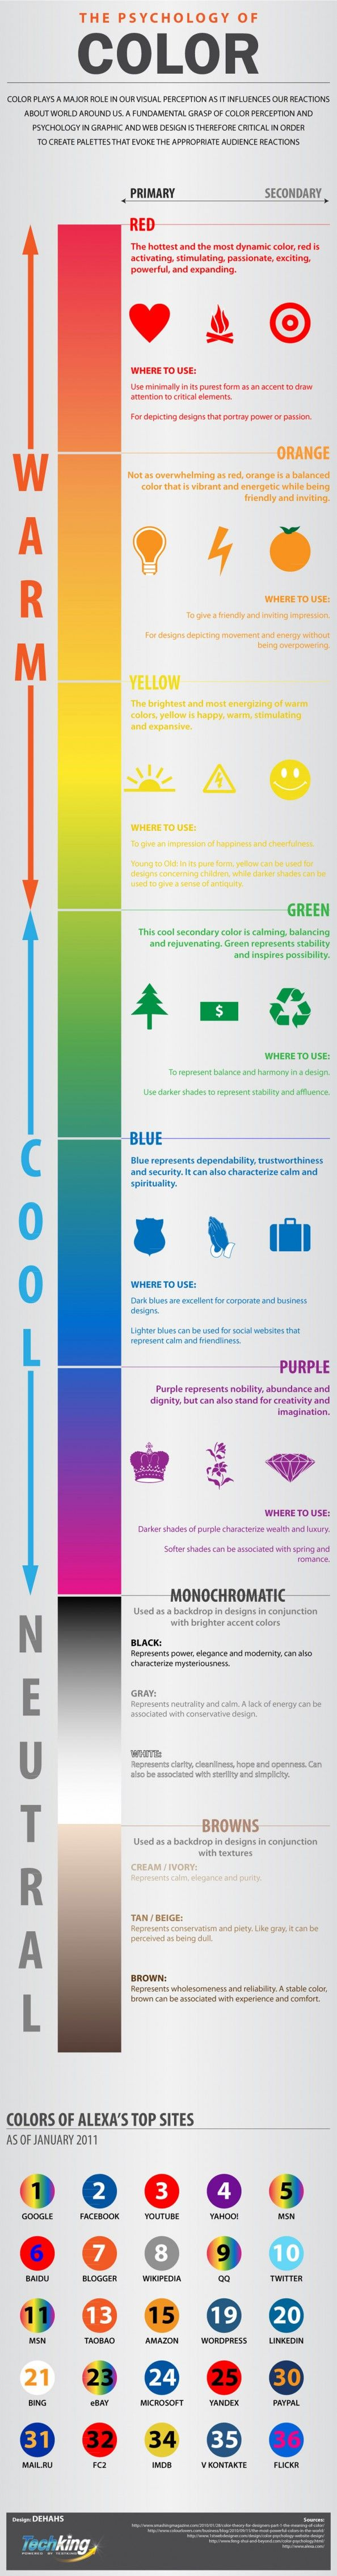 The Psycology of Color, infographic designed by Shahed Syed. Color plays a major role in our visual perceptions and our reactions to things. This infographic provides information for how graphic designers should use color and which colors are appropriate for what purposes. http://www.shah3d.com/